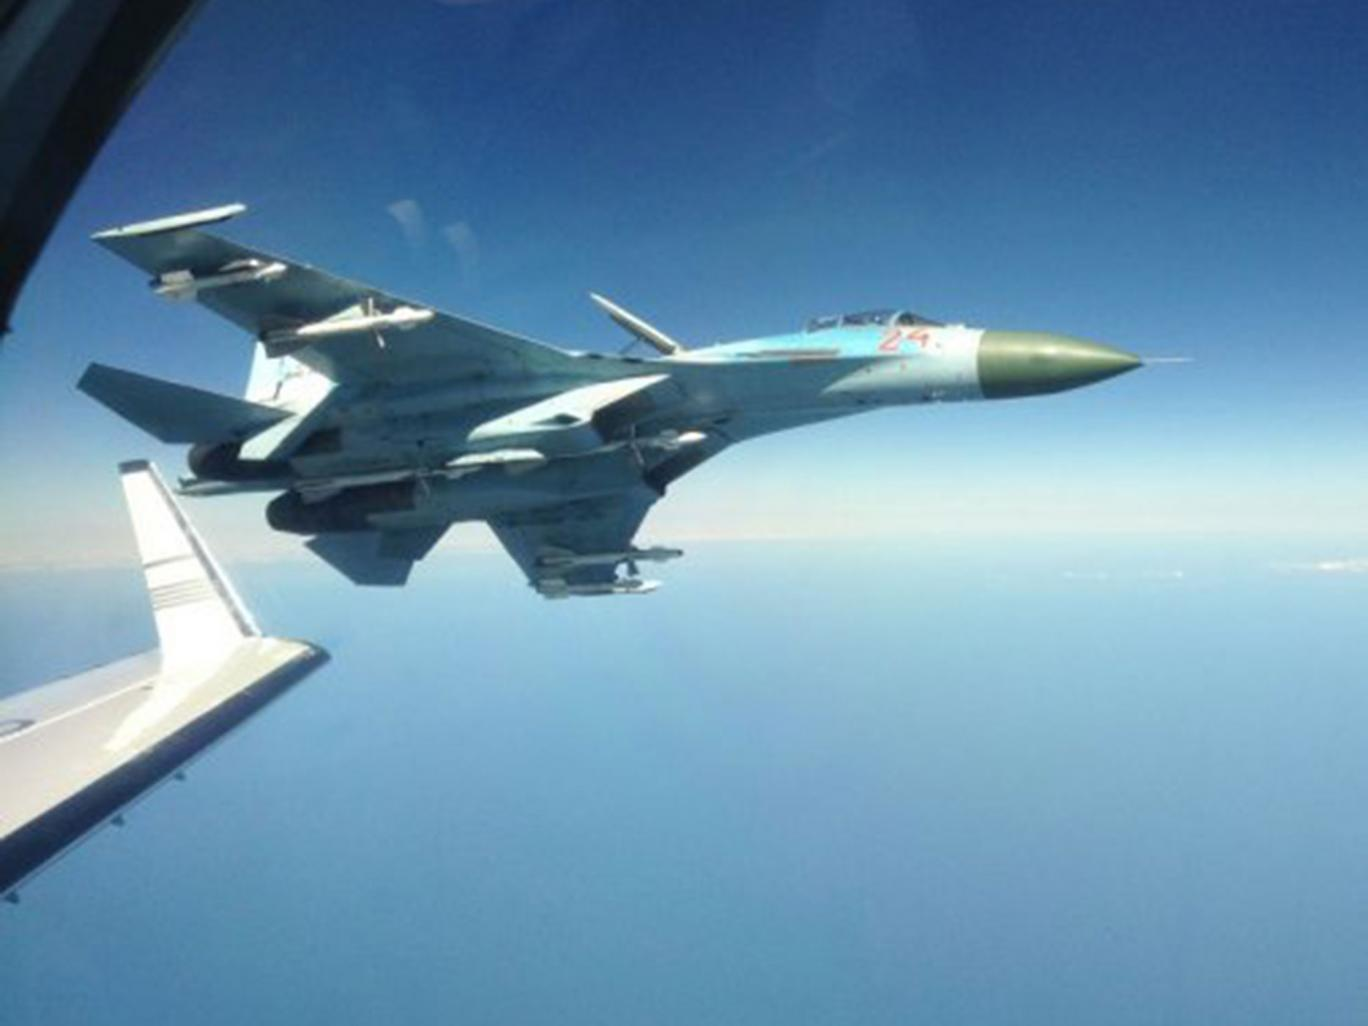 A Russian su-27 fighter jet photographed next to a Swedish intelligence plane in 2014 FRA